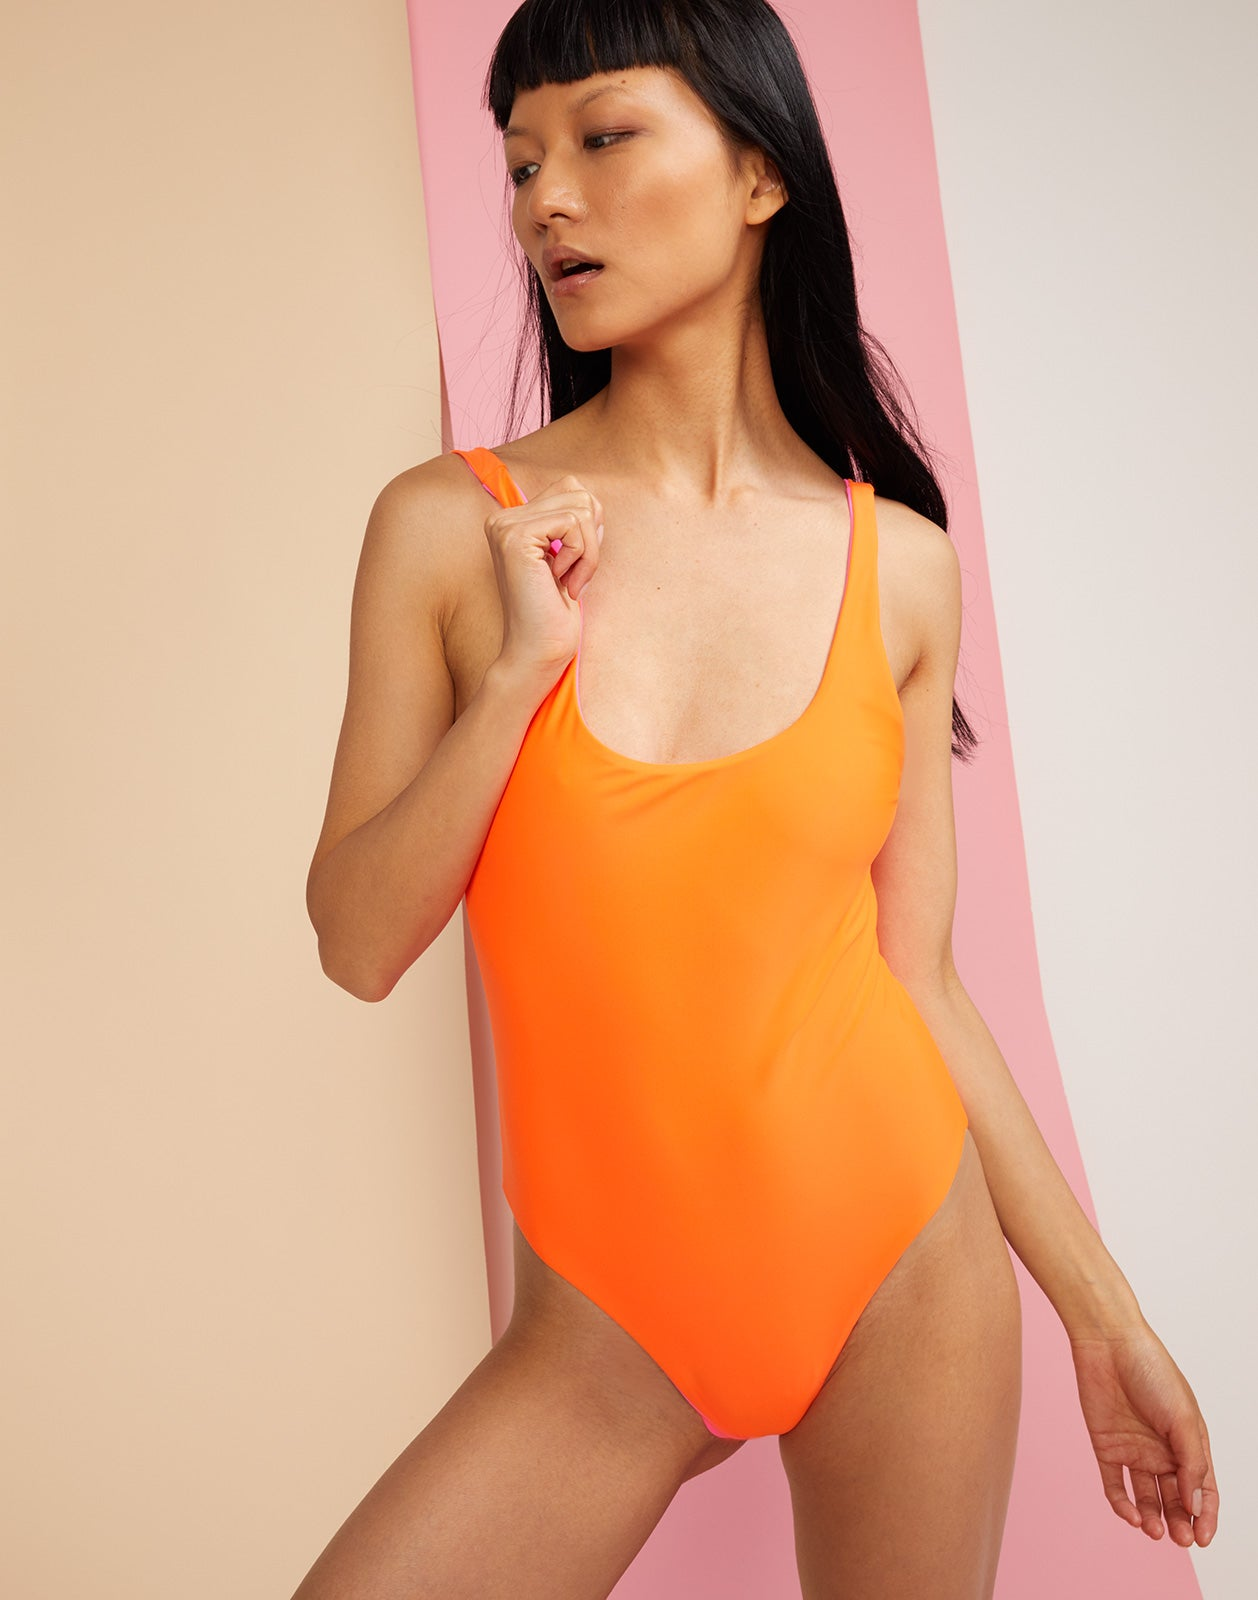 Front view of reversible swimsuit with 'lovedove' embroidery worn on orange side.